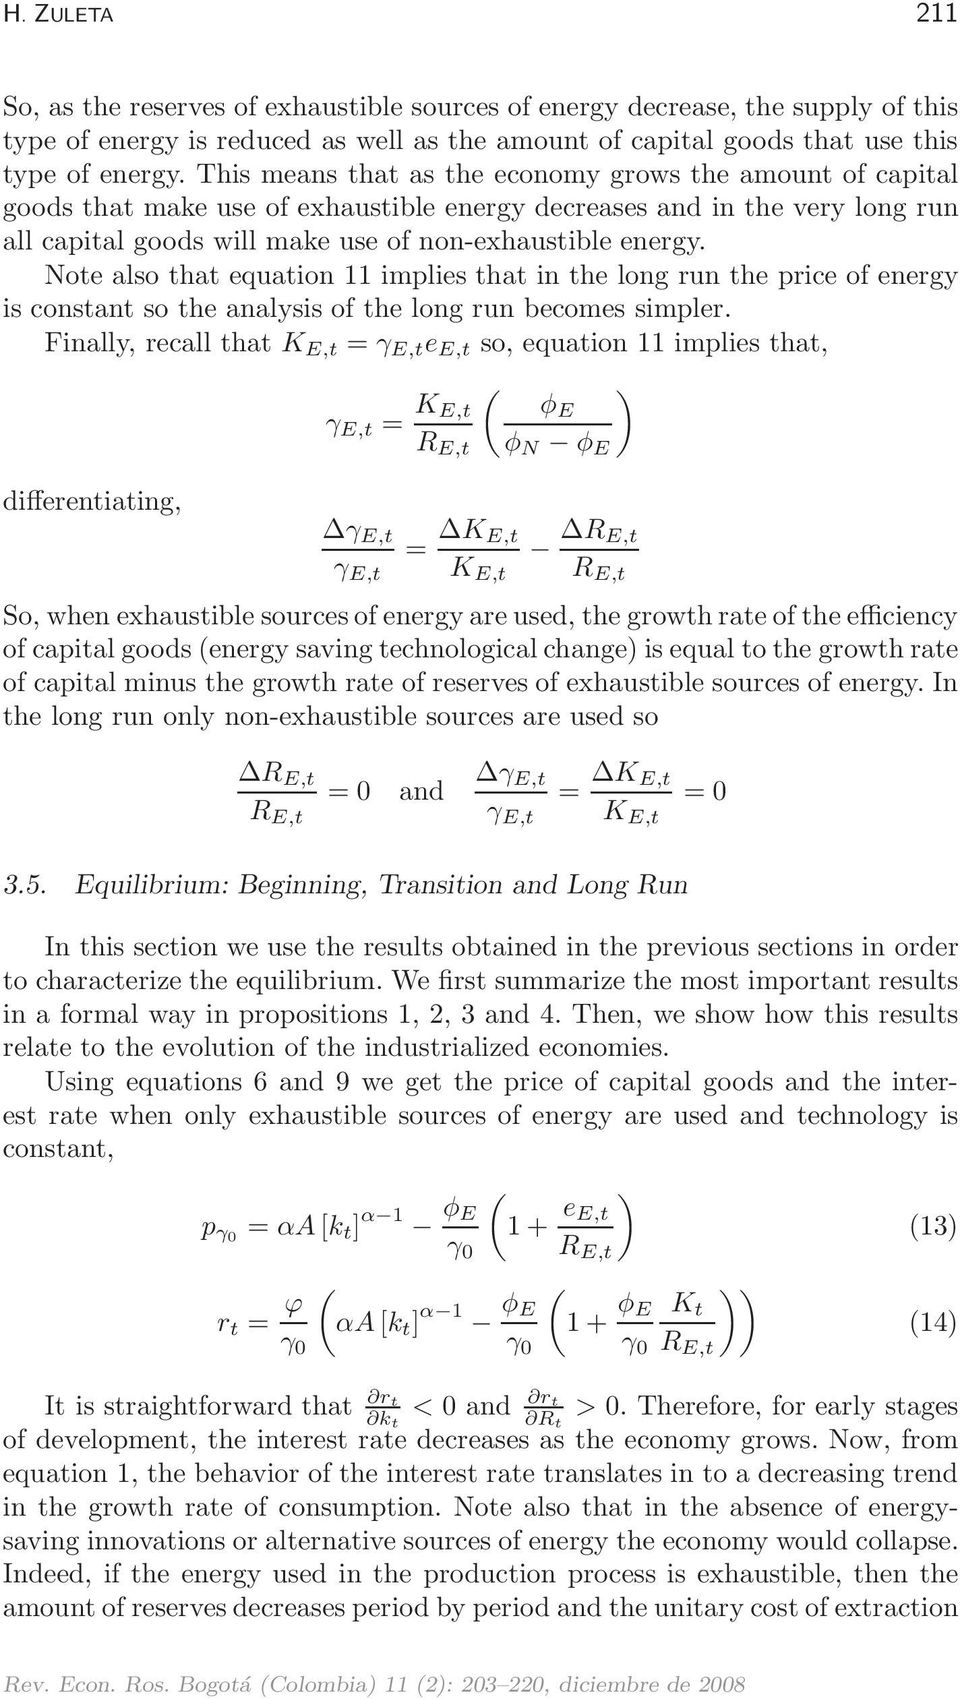 Note also that equation 11 implies that in the long run the price of energy is constant so the analysis of the long run becomes simpler.